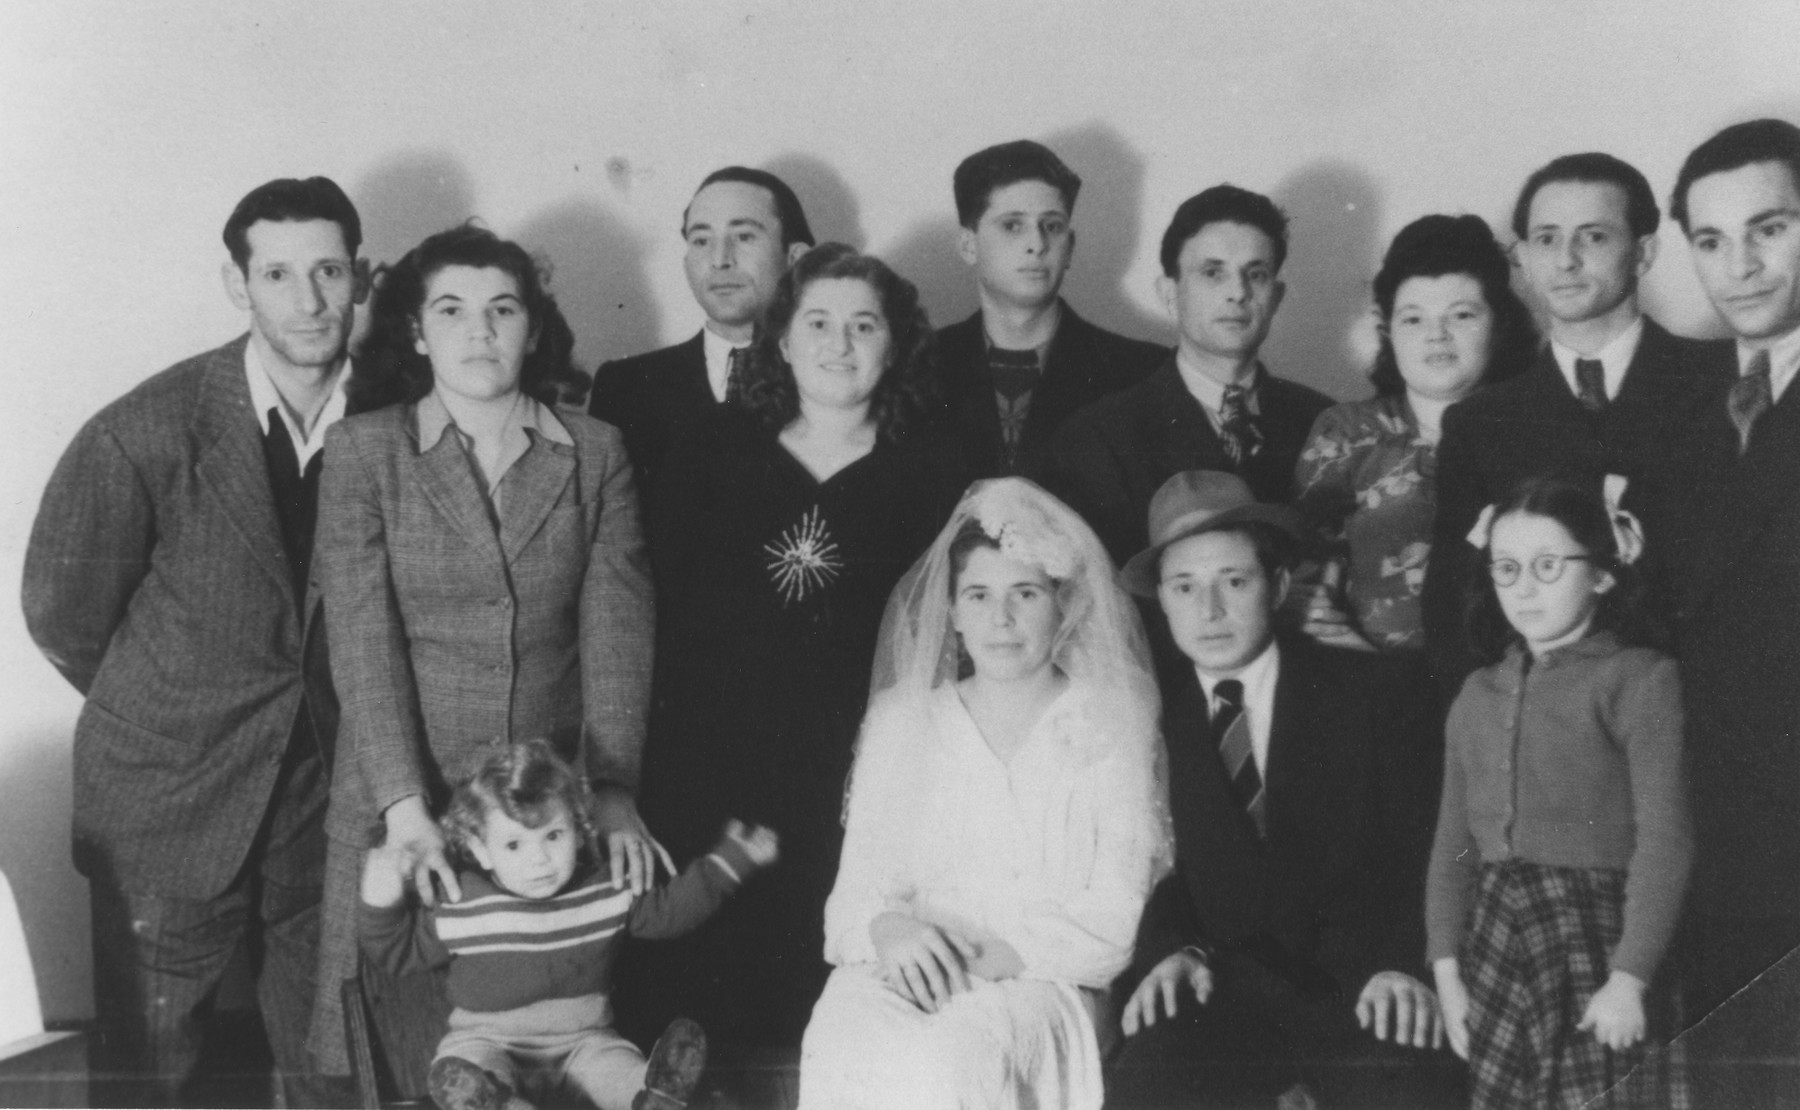 Wedding portrait of Pinkus Gipsman and Etta Falkovics in the Bari displaced persons camp.  At least five different brides wore this wedding dress in the Bari DP camp.  Etta's sister Tauba (Falakovics) Schechter, her husband Isidor and daughter Miriam are pictured on the left.